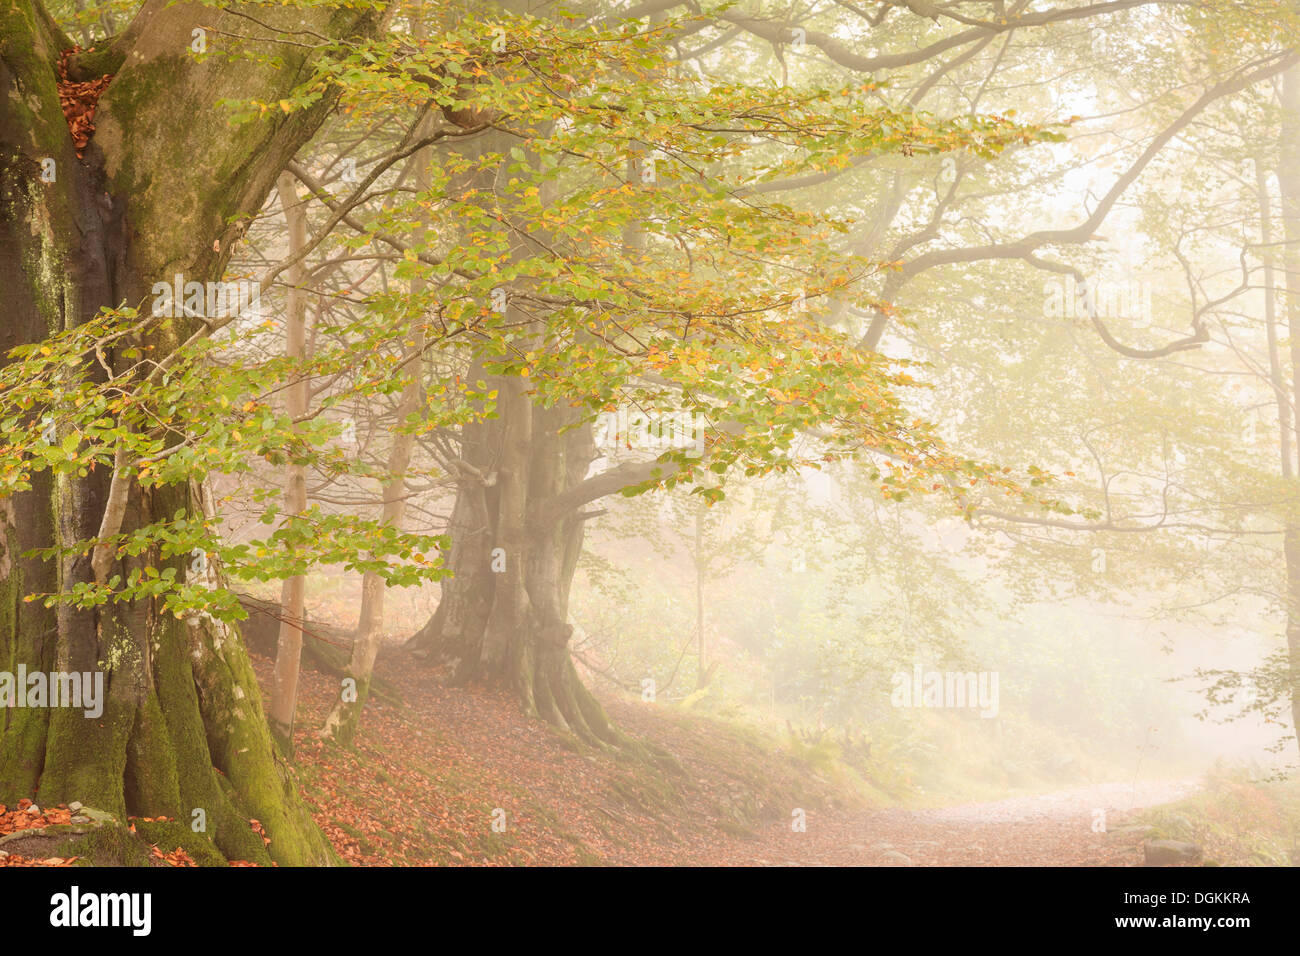 Trees in mist near Grasmere. - Stock Image